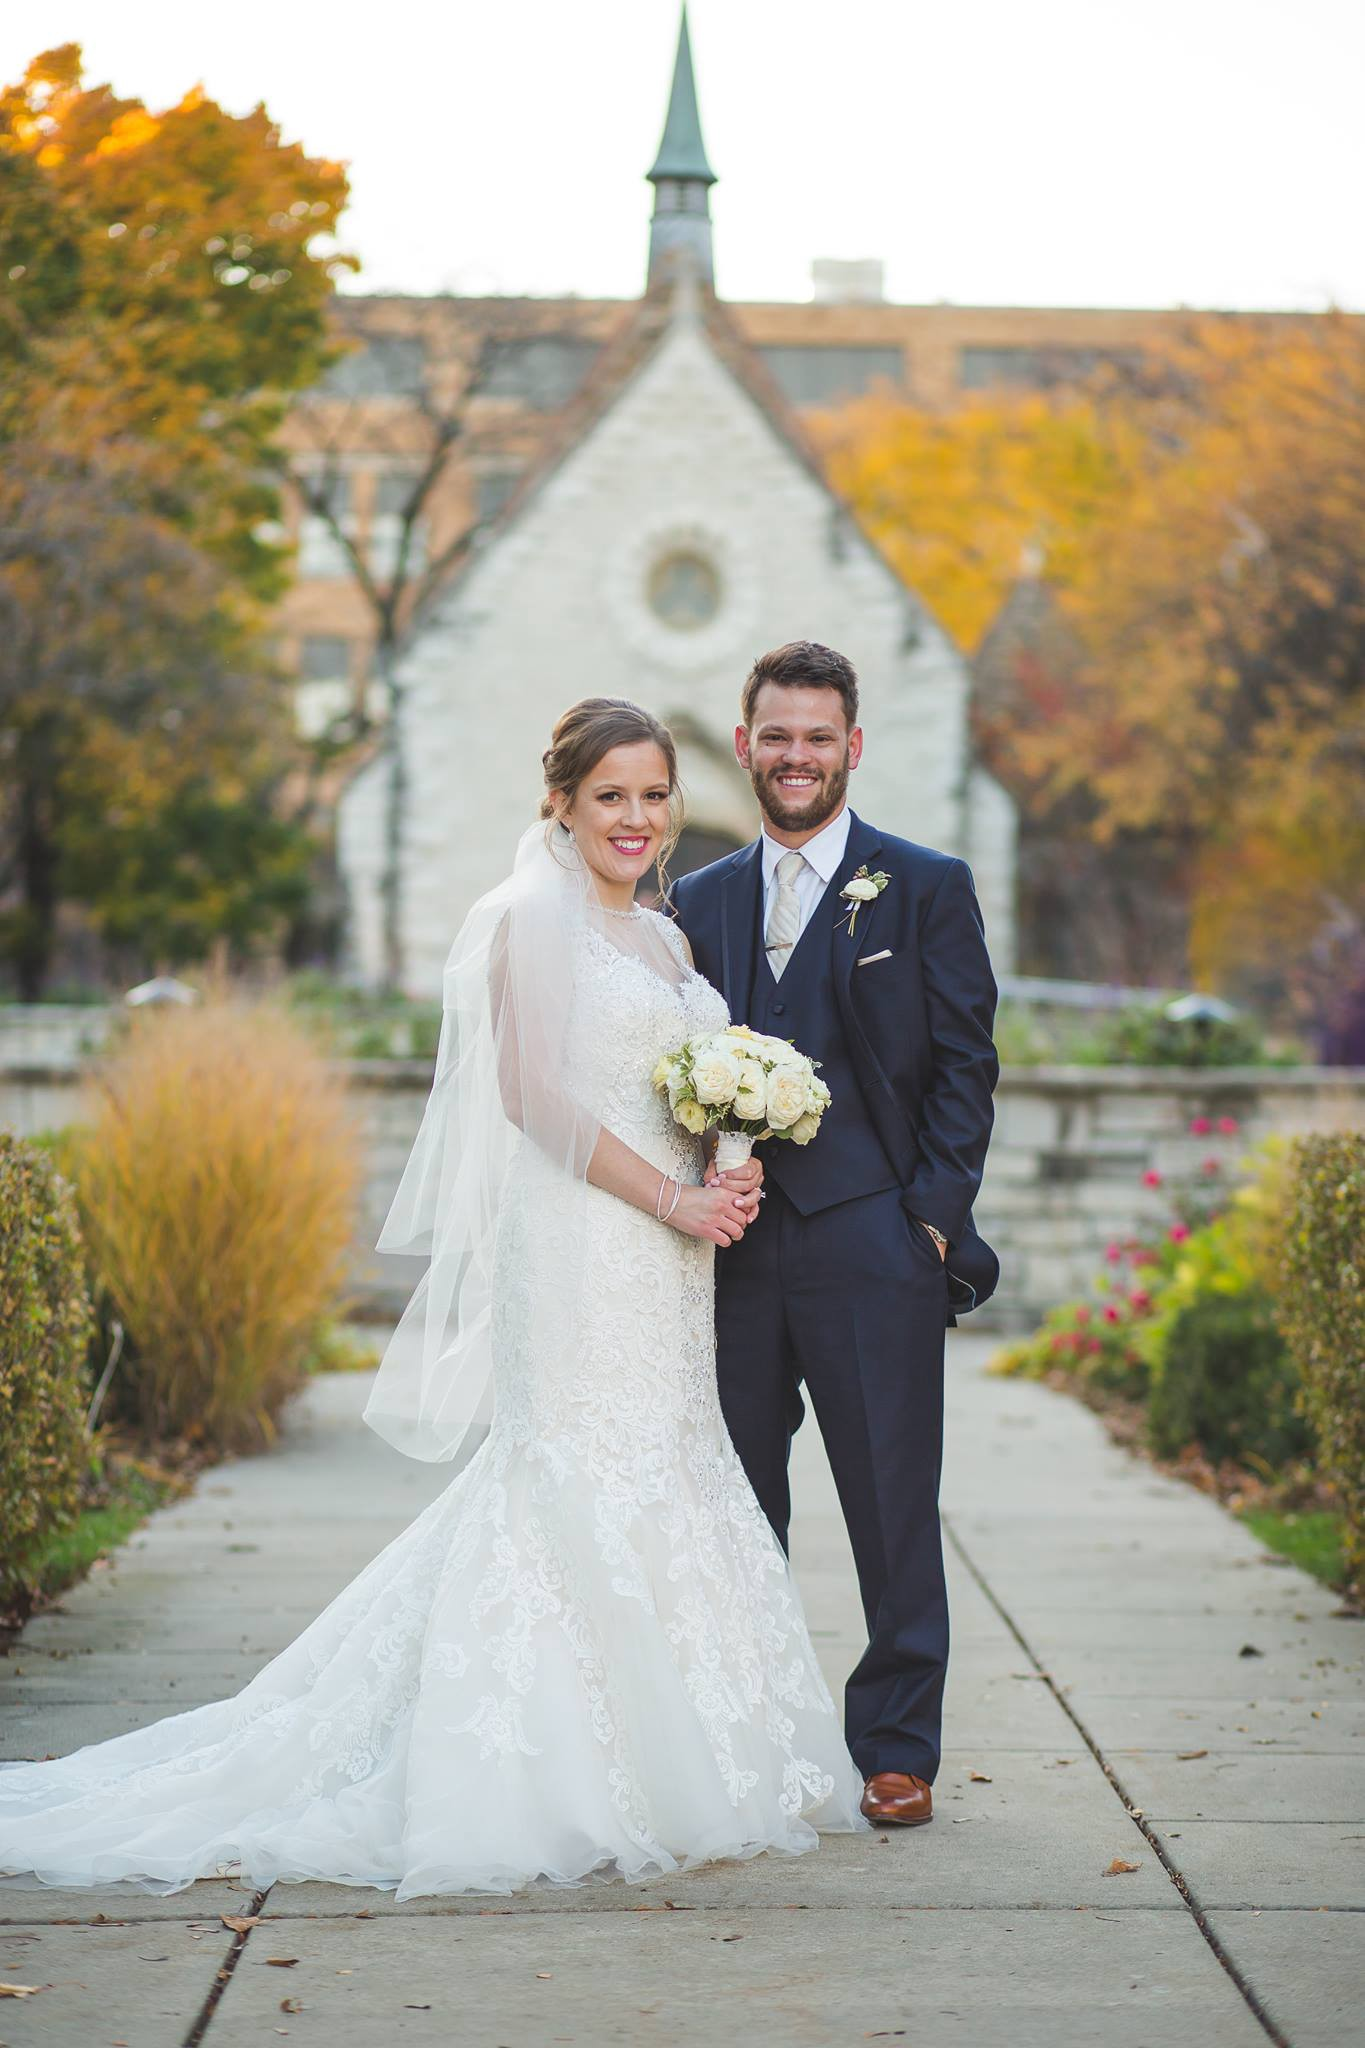 603ee97fb8 Jacob Schlindwein (Health Sciences '13, Dental '16) and I met our junior  year through my roommate. We were married on November 5, 2016 in Milwaukee  ...